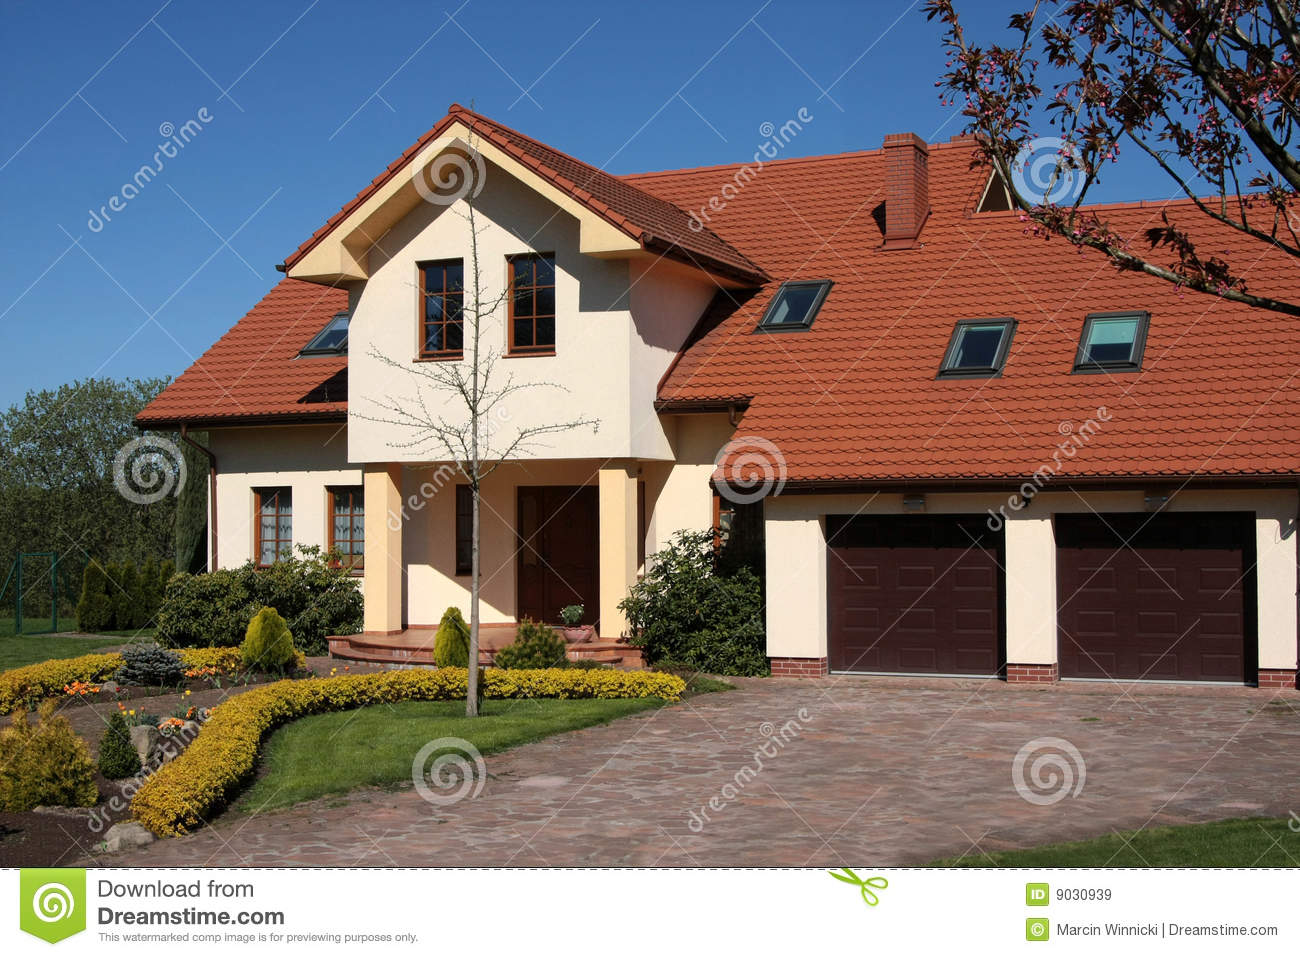 Classic house royalty free stock images image 9030939 for Classic house zene